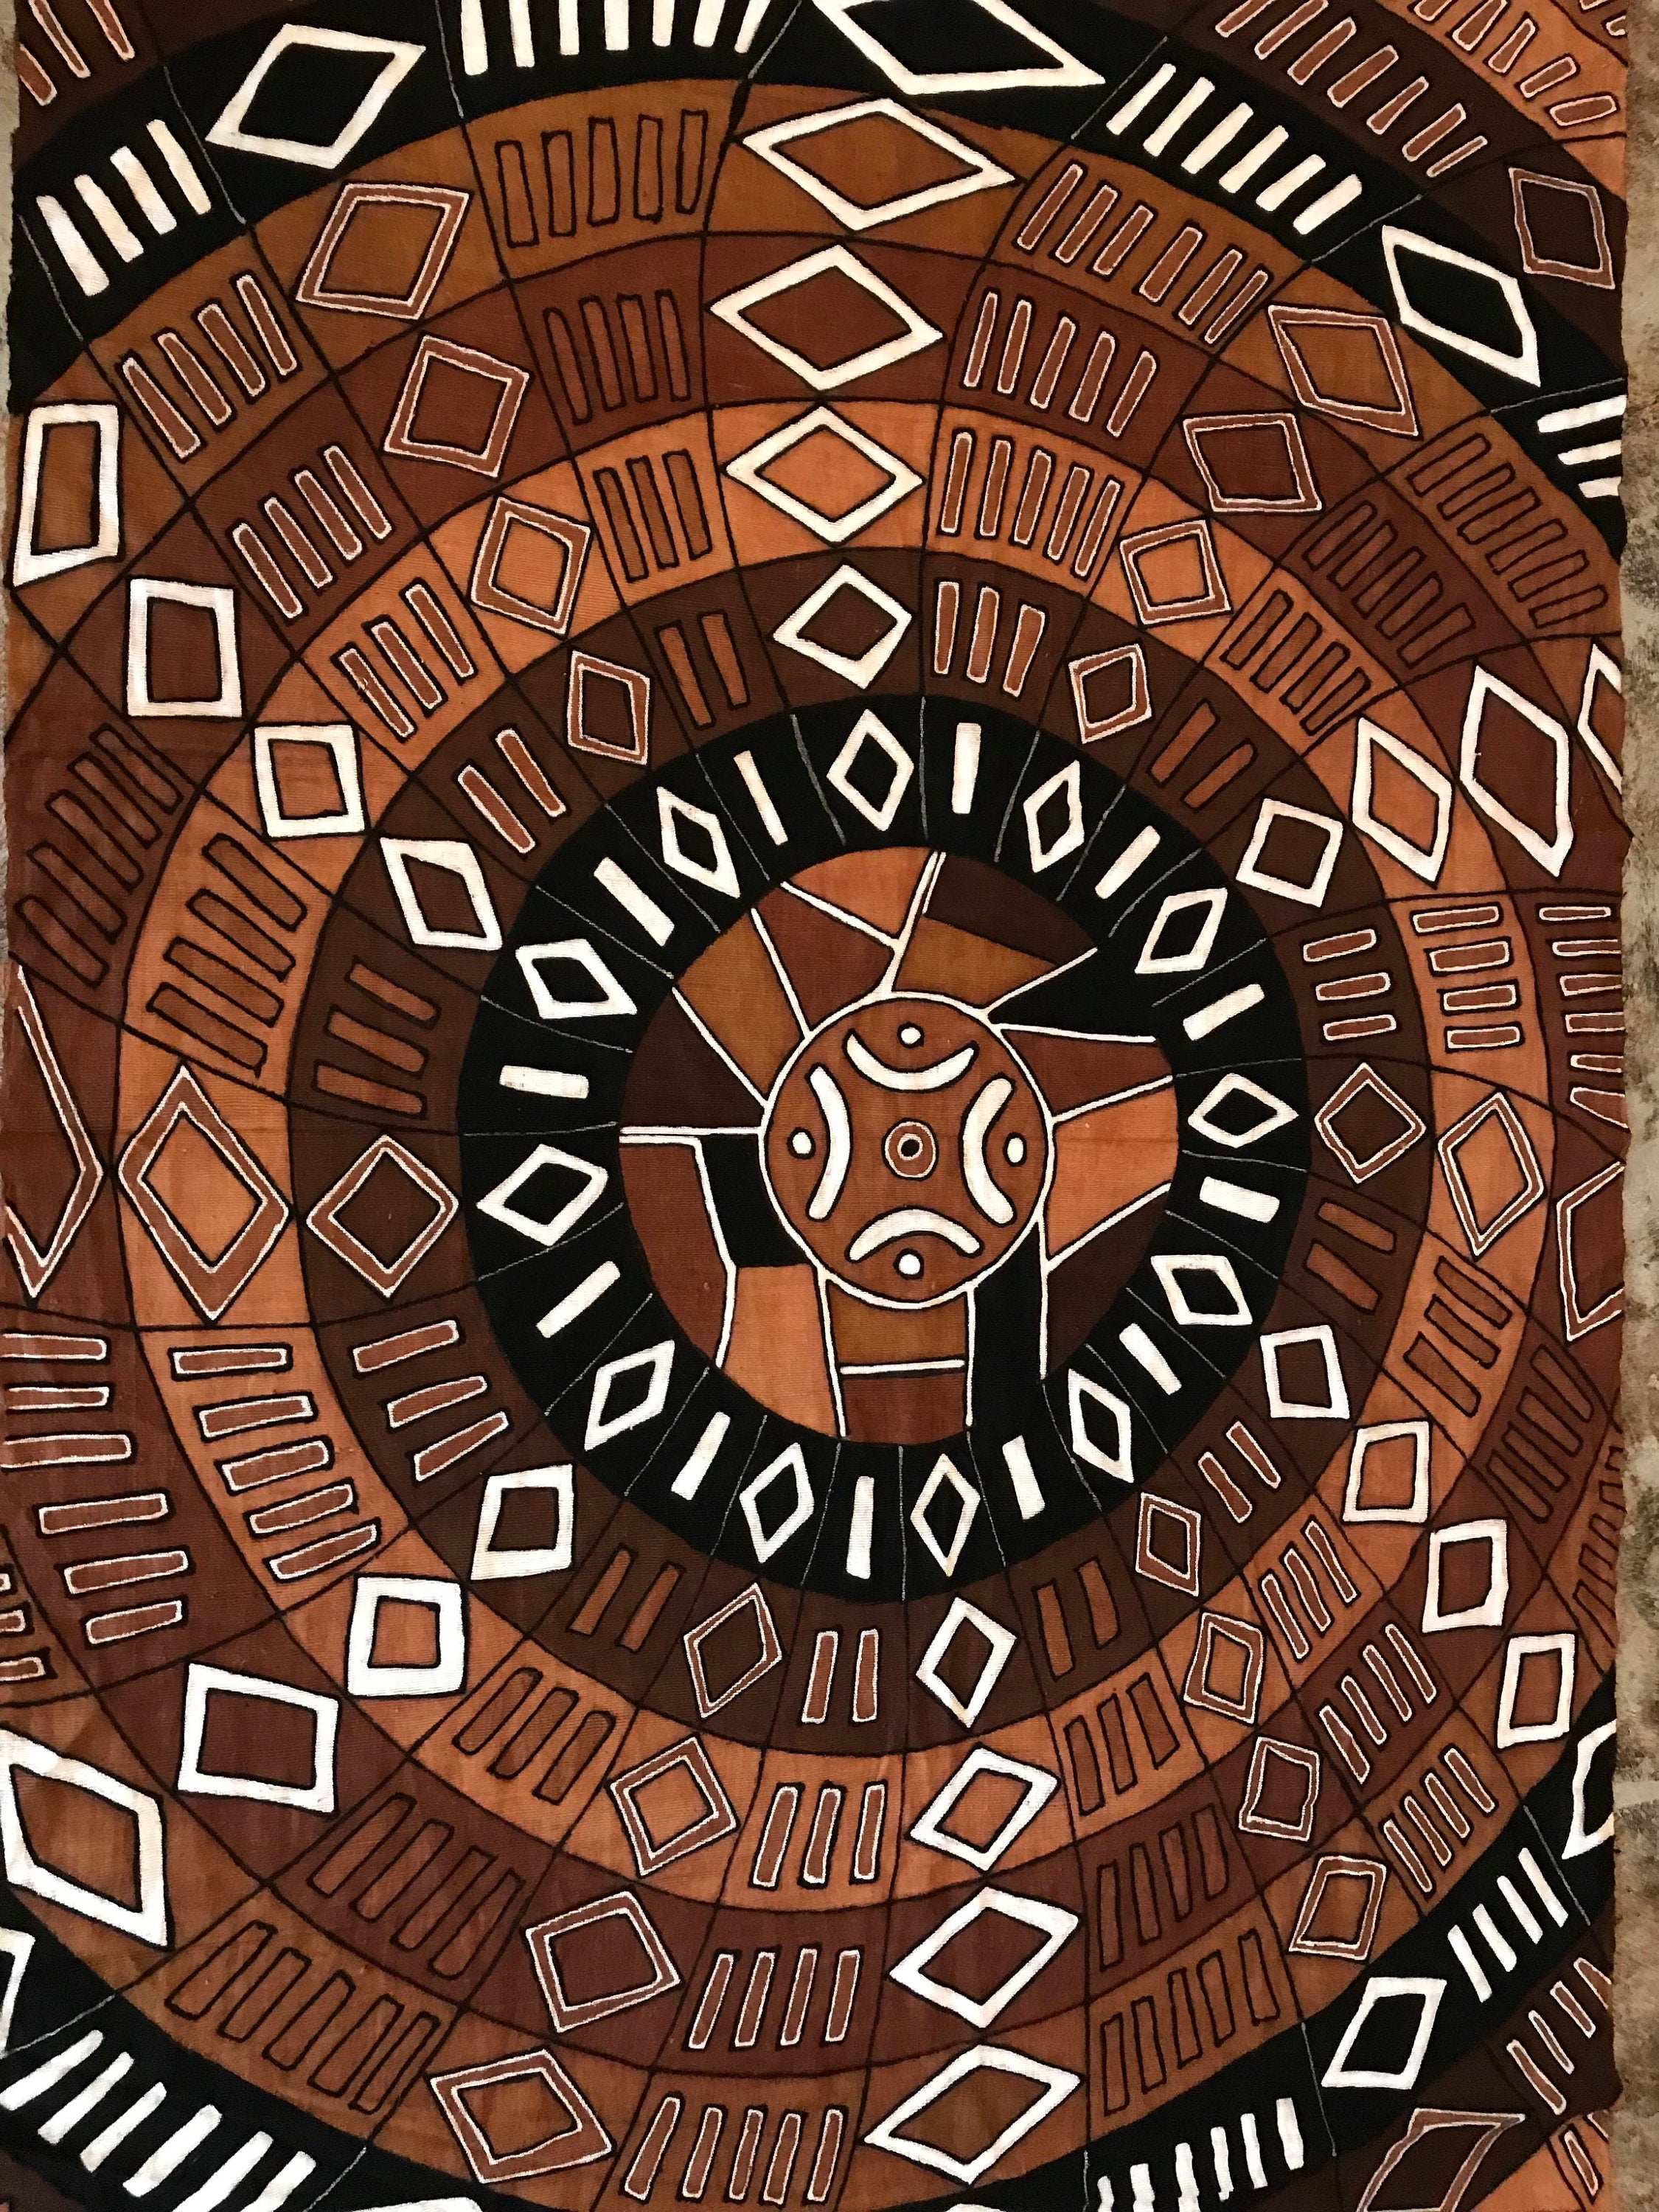 Mudcloth Throw, African Mudcloth Fabric, Mudcloth Interior Design, Mudcloth Mandala, Afrocentric Home Decor